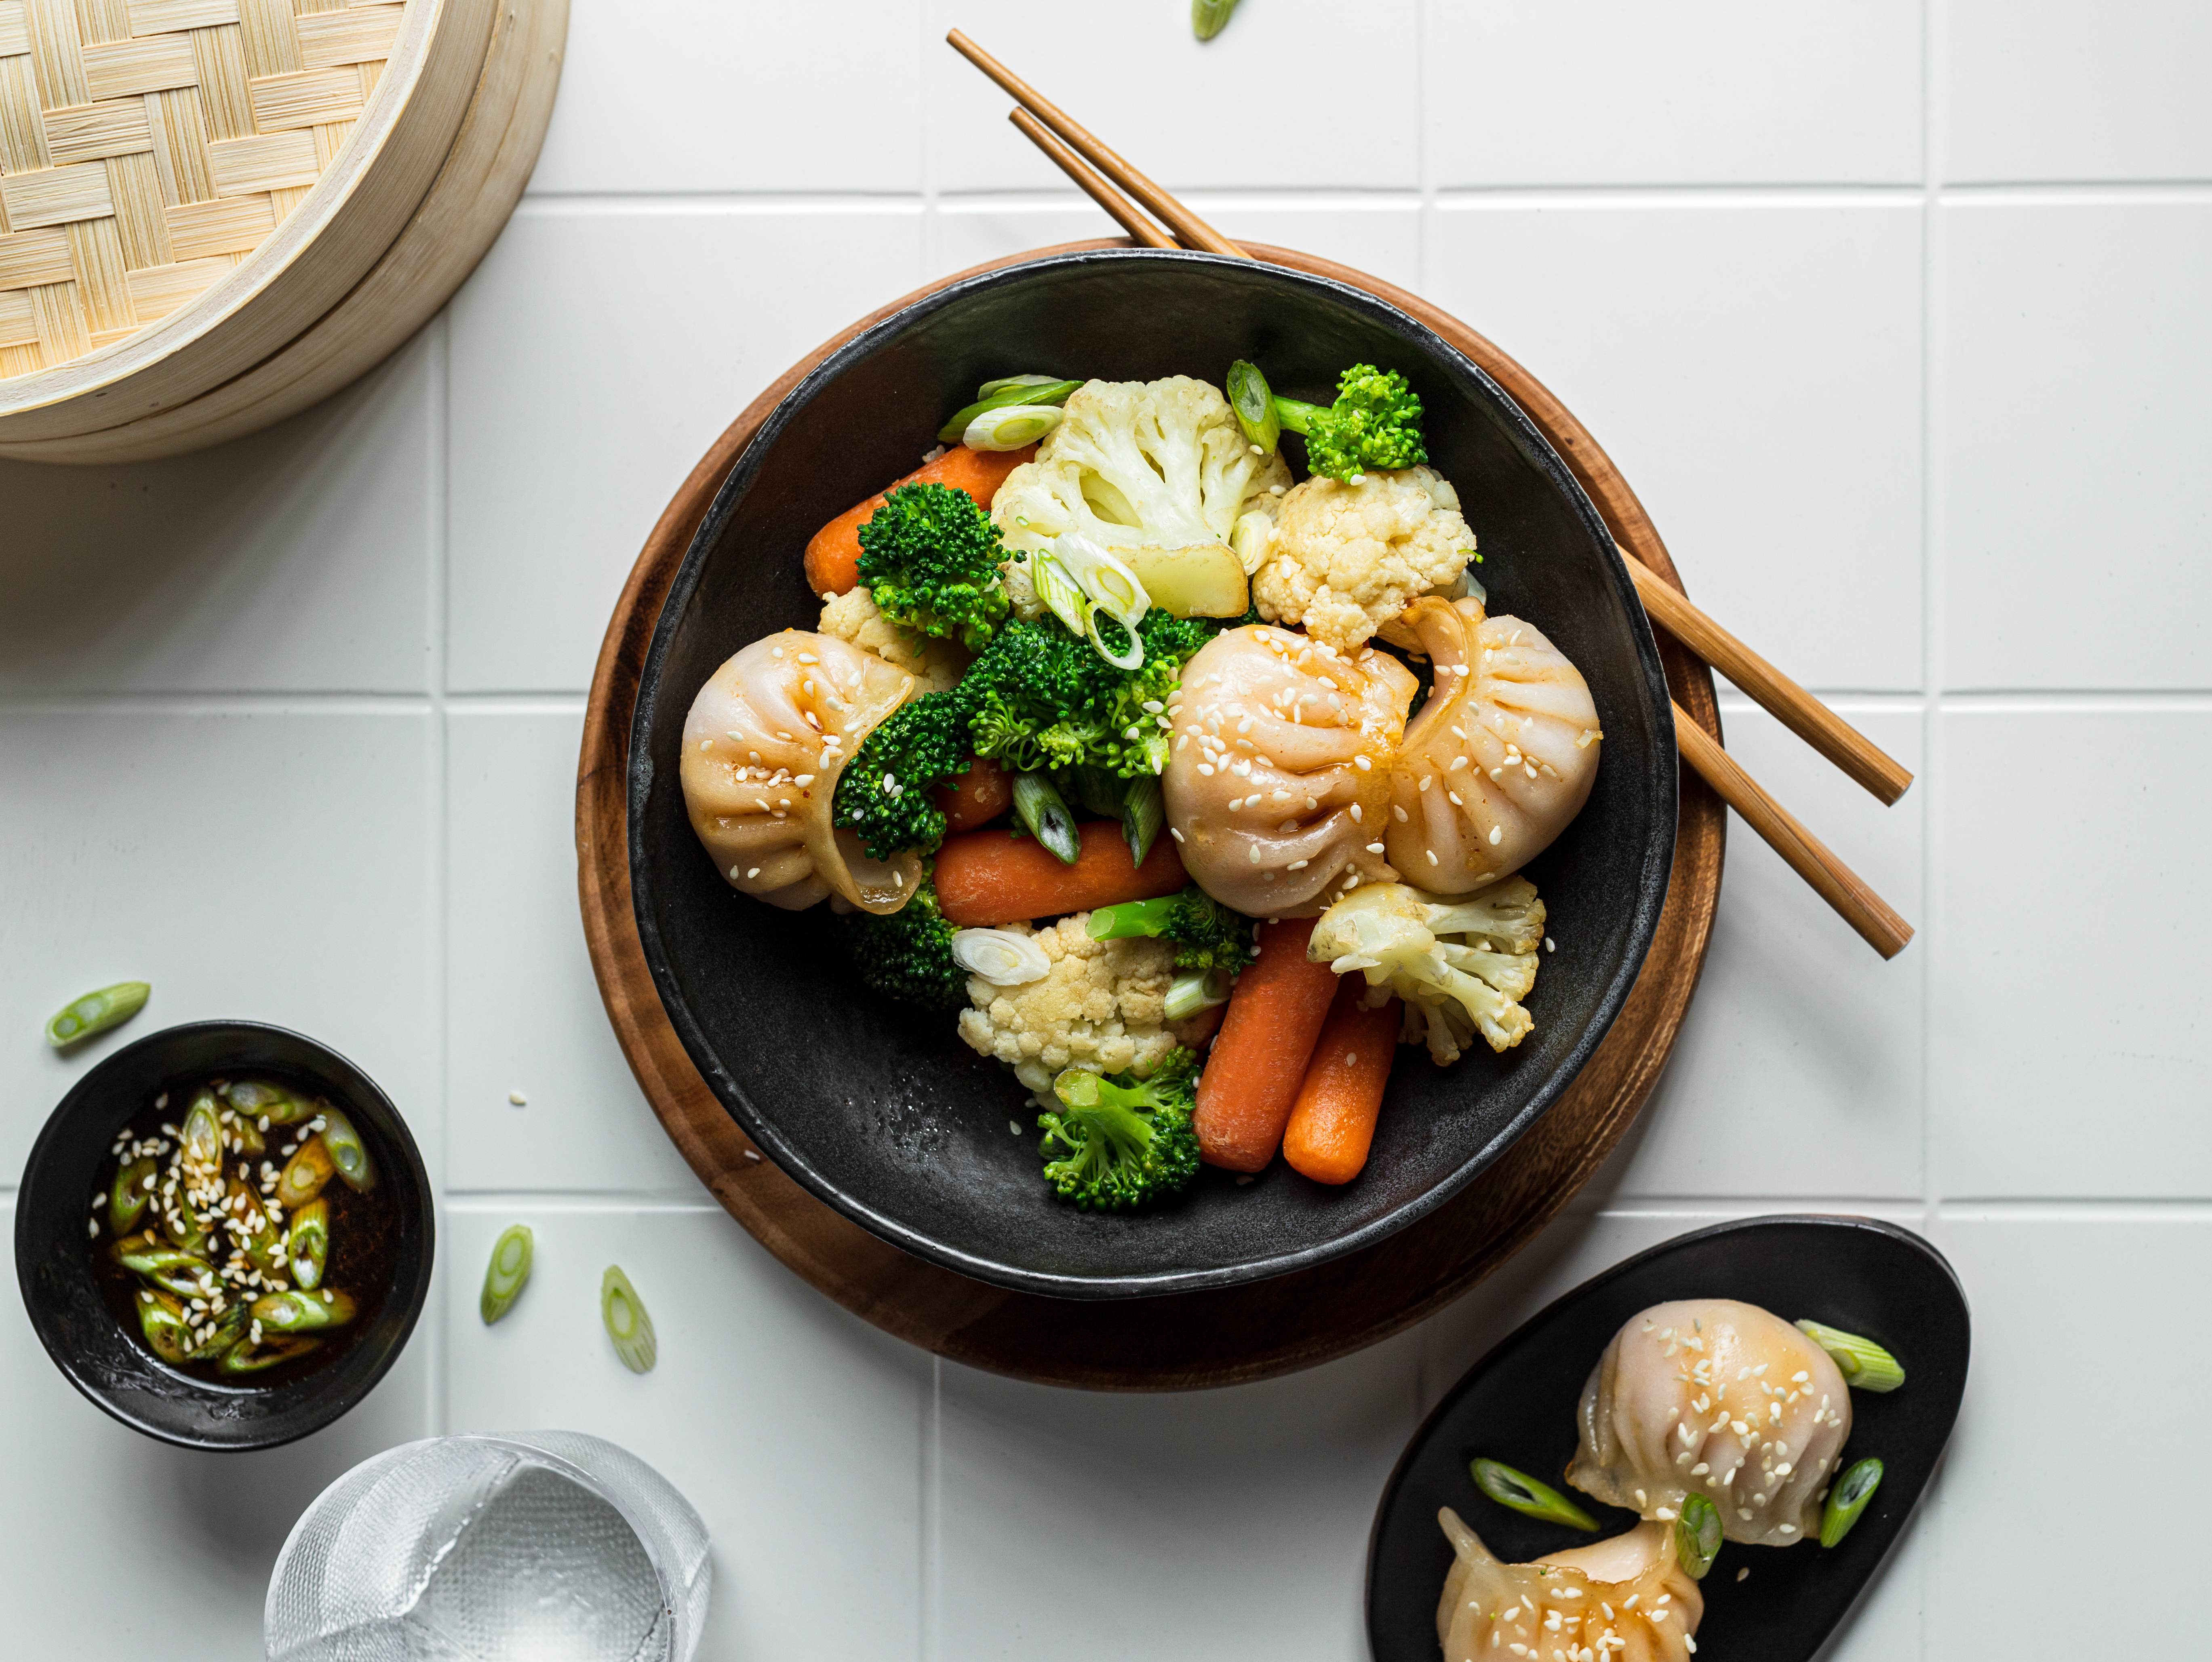 Broccoli, Cauliflower & Carrot Medley with Soy Sesame Dumplings